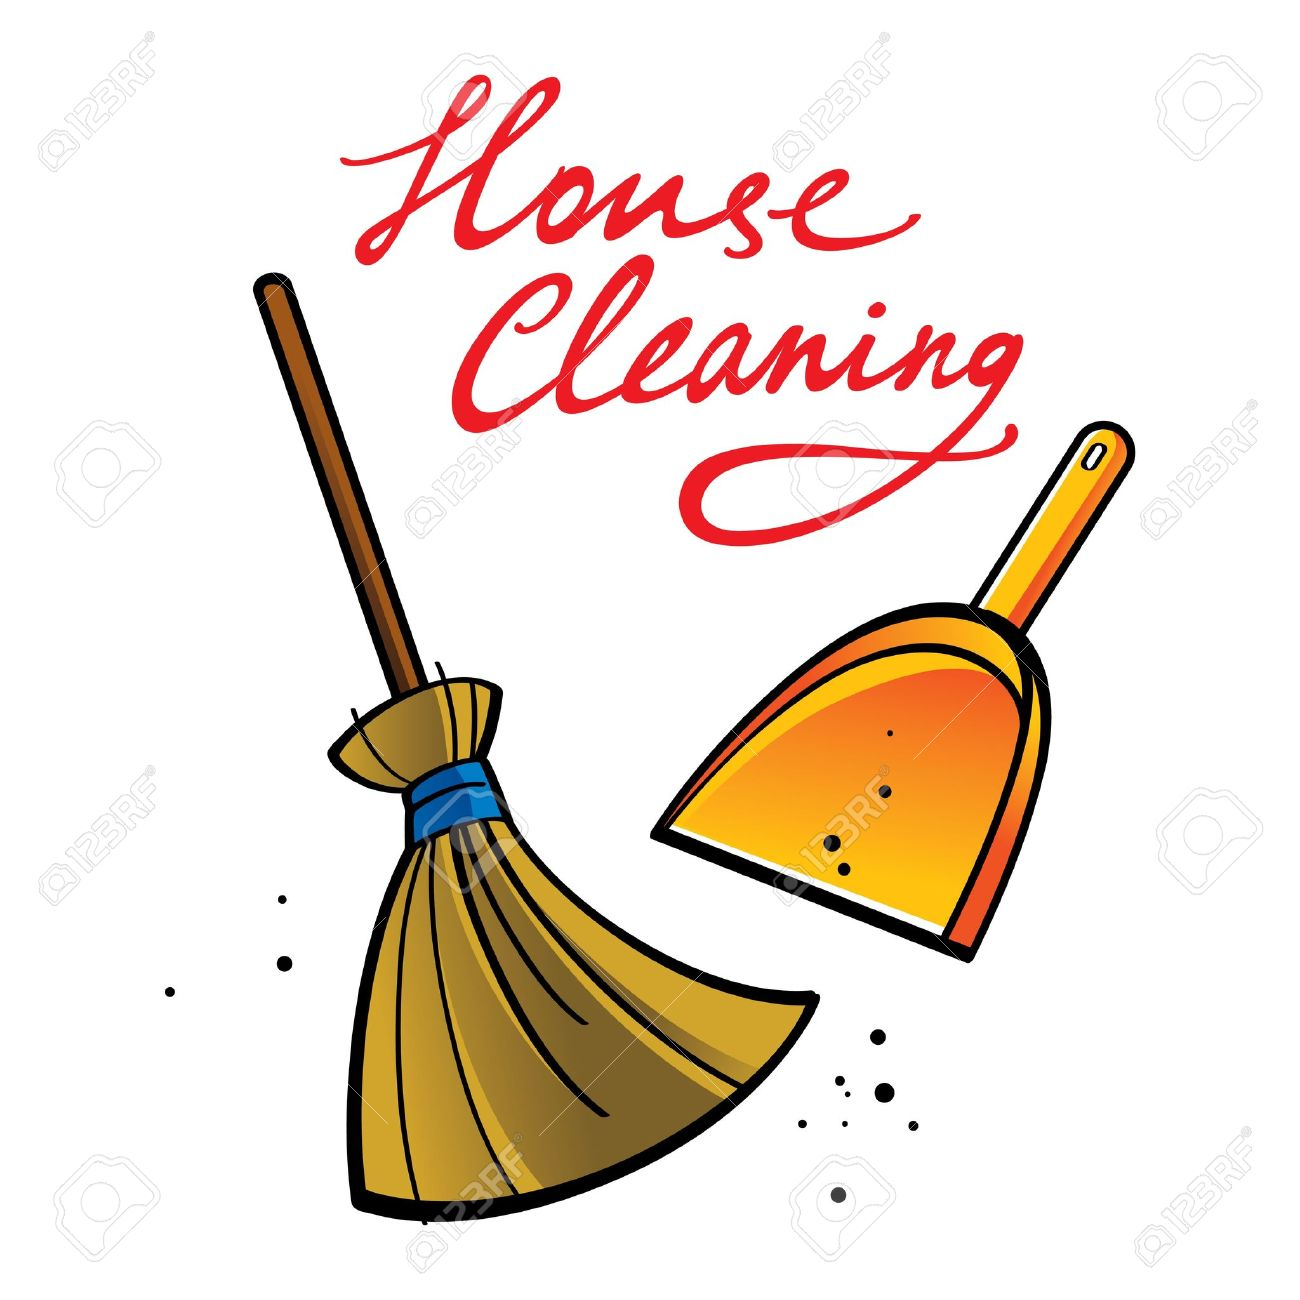 1300x1300 House Cleaning Broom Brush Dust Dirt Service Shovel Royalty Free